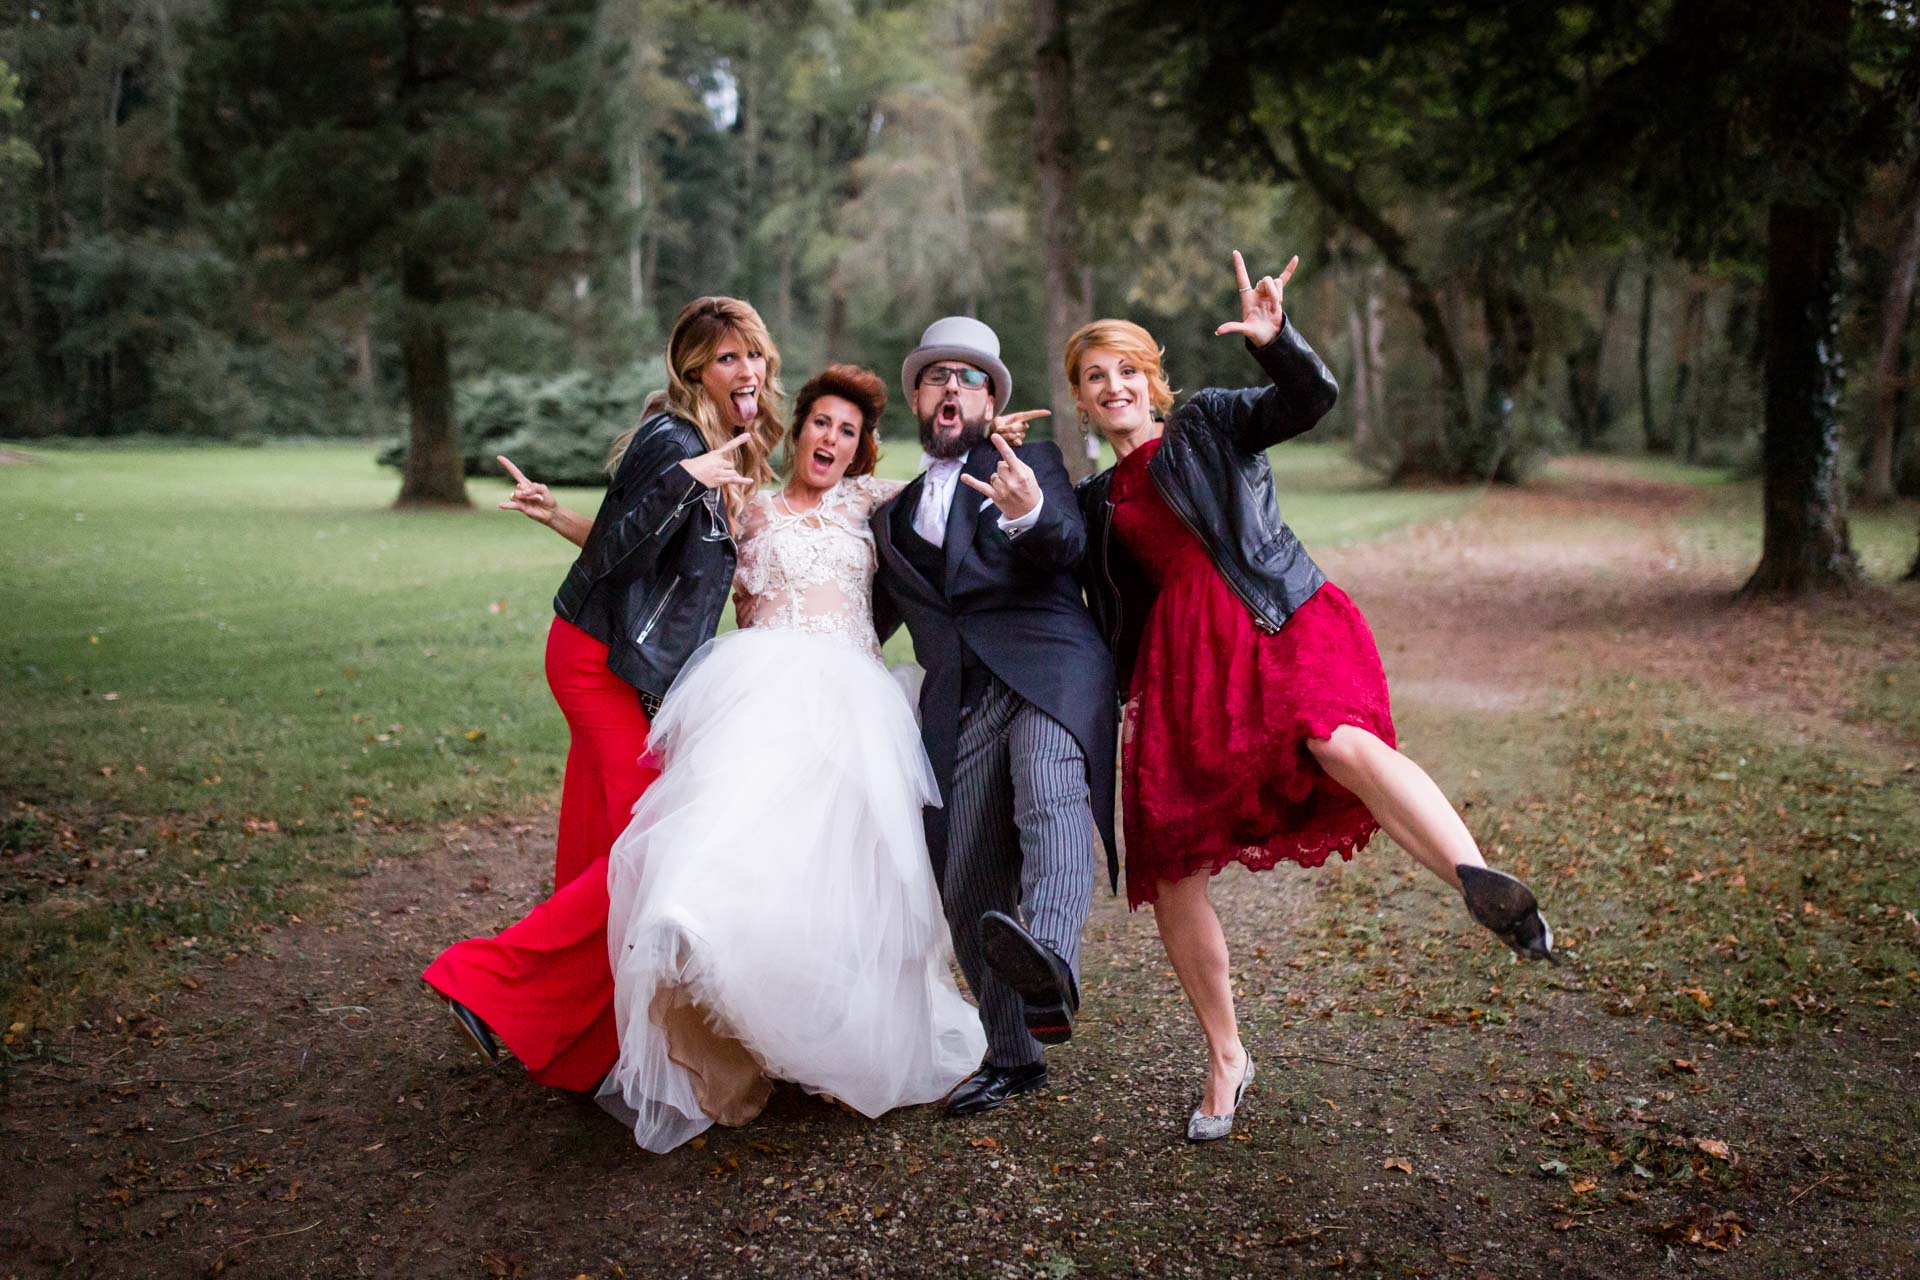 Photographe de Mariage Rock one more rocking group photos